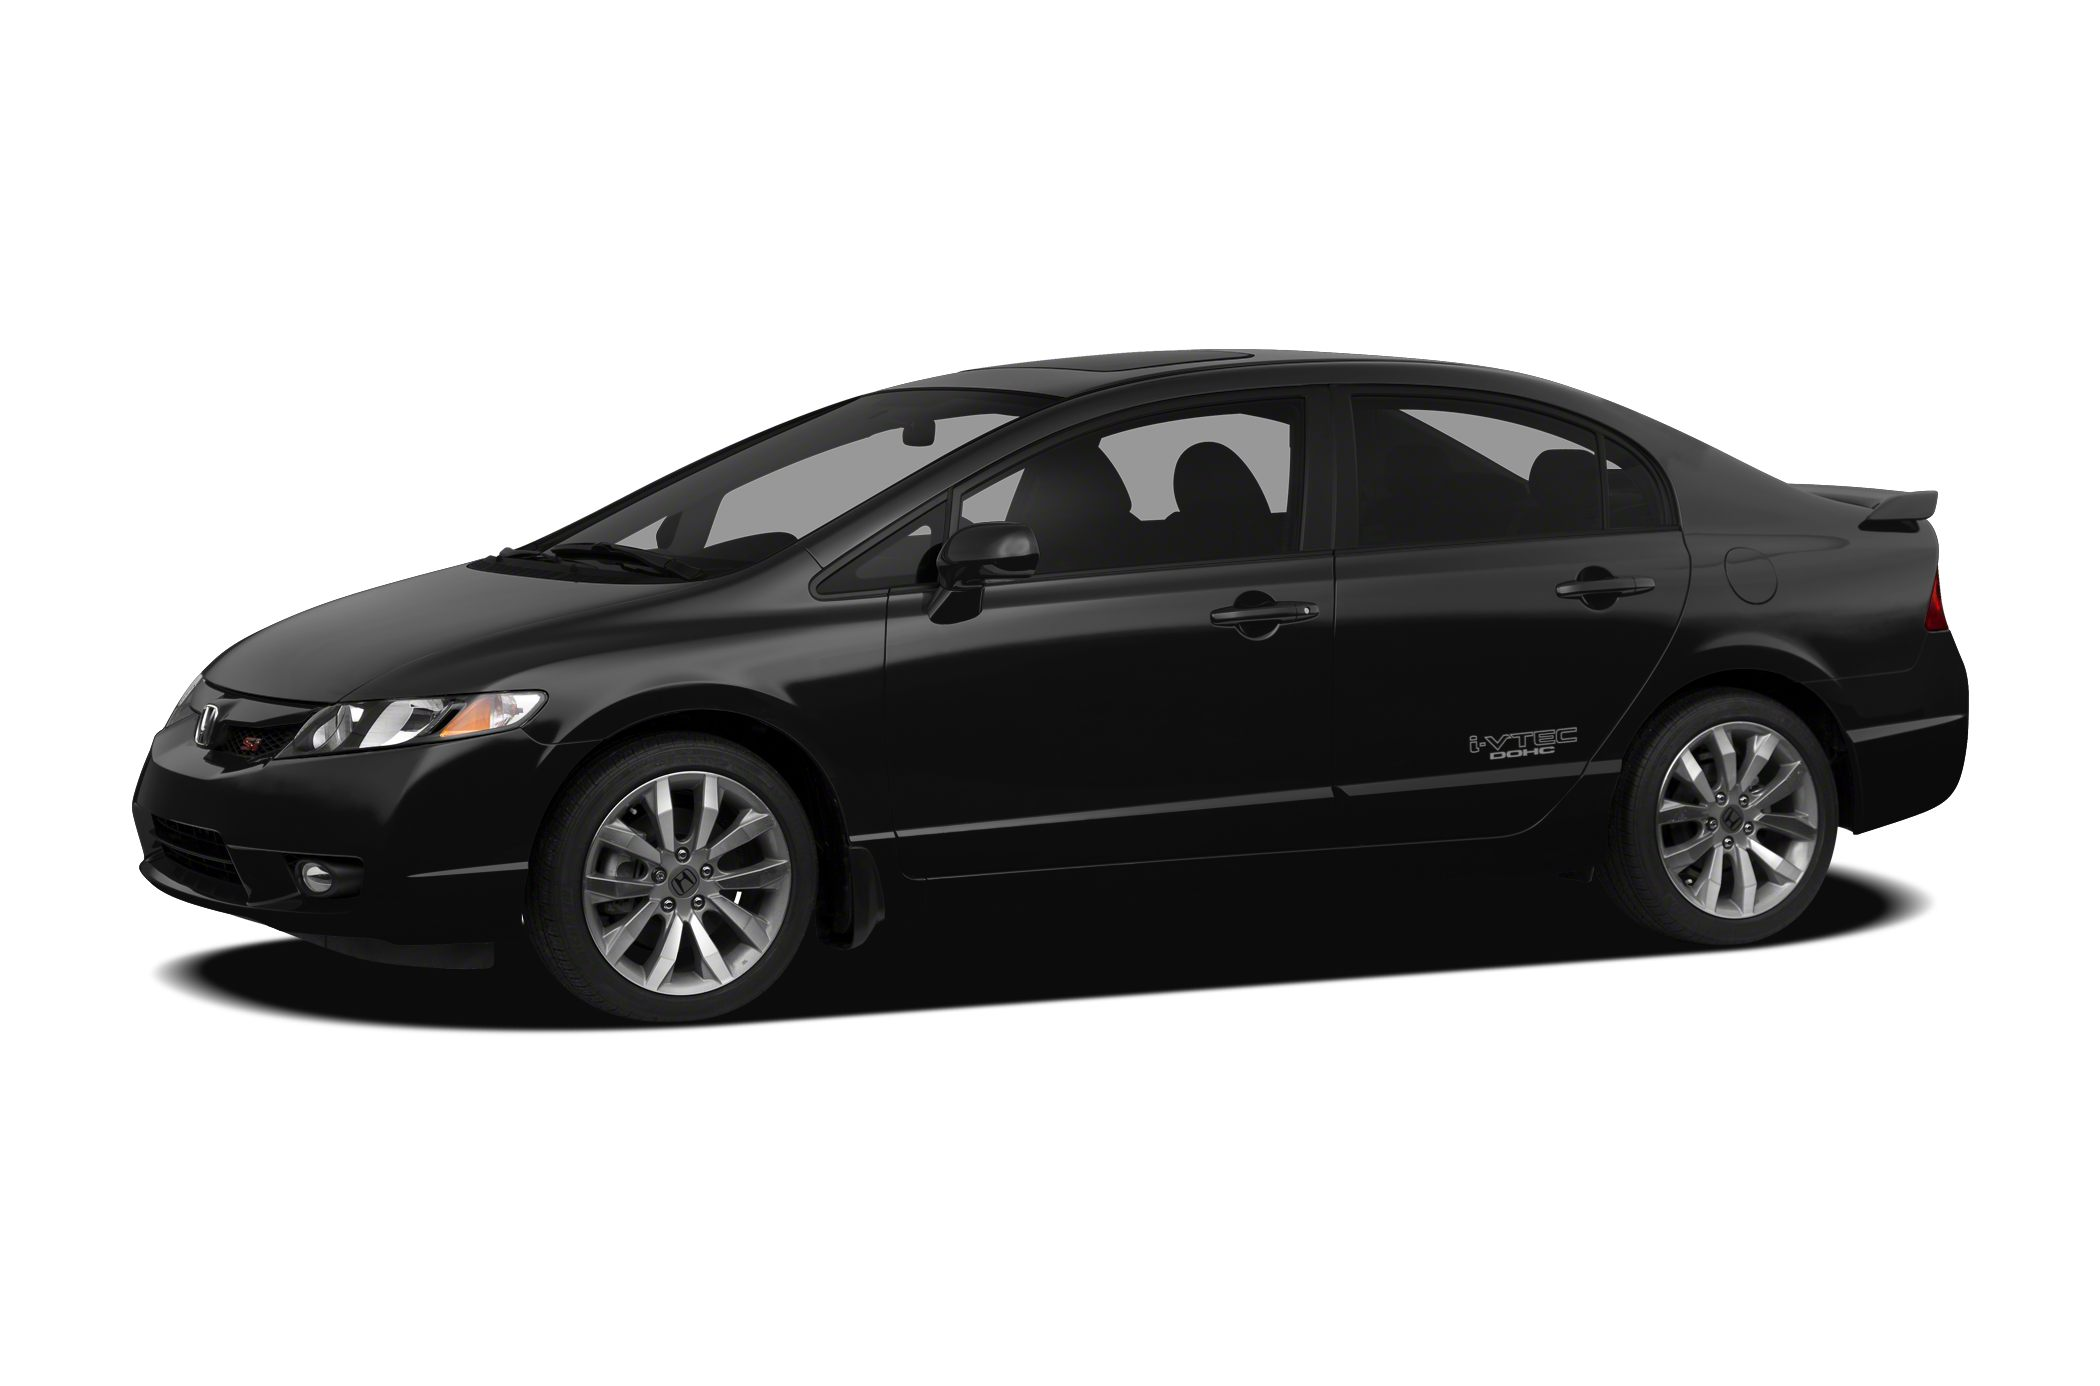 2010 Honda Civic Si Sedan for sale in Pembroke Pines for $14,999 with 70,583 miles